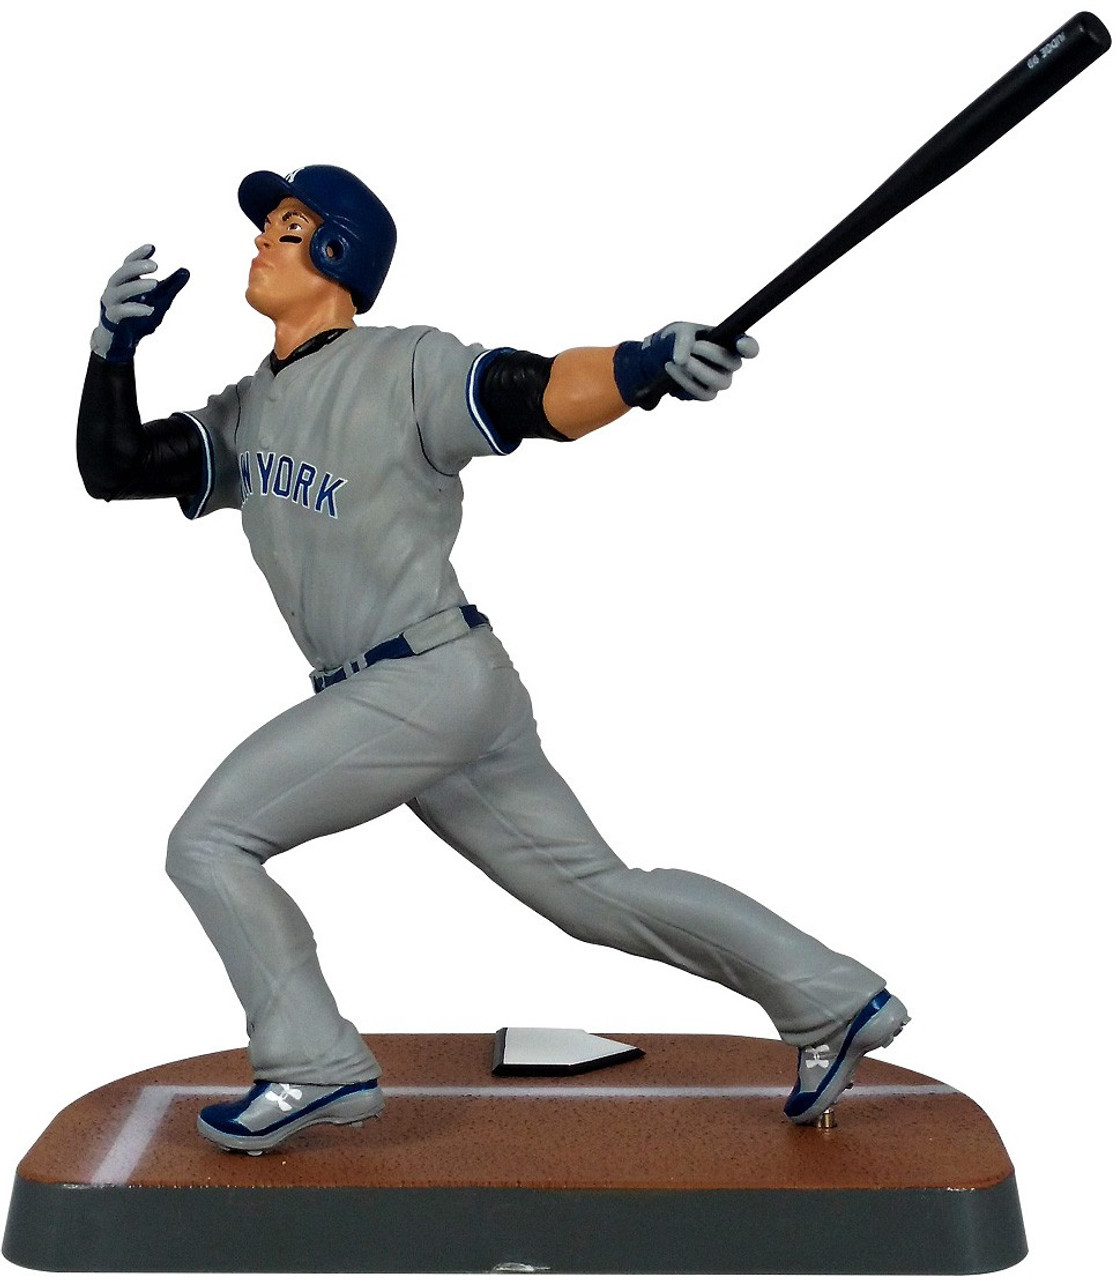 MLB New York Yankees 2017 Aaron Judge Action Figure All